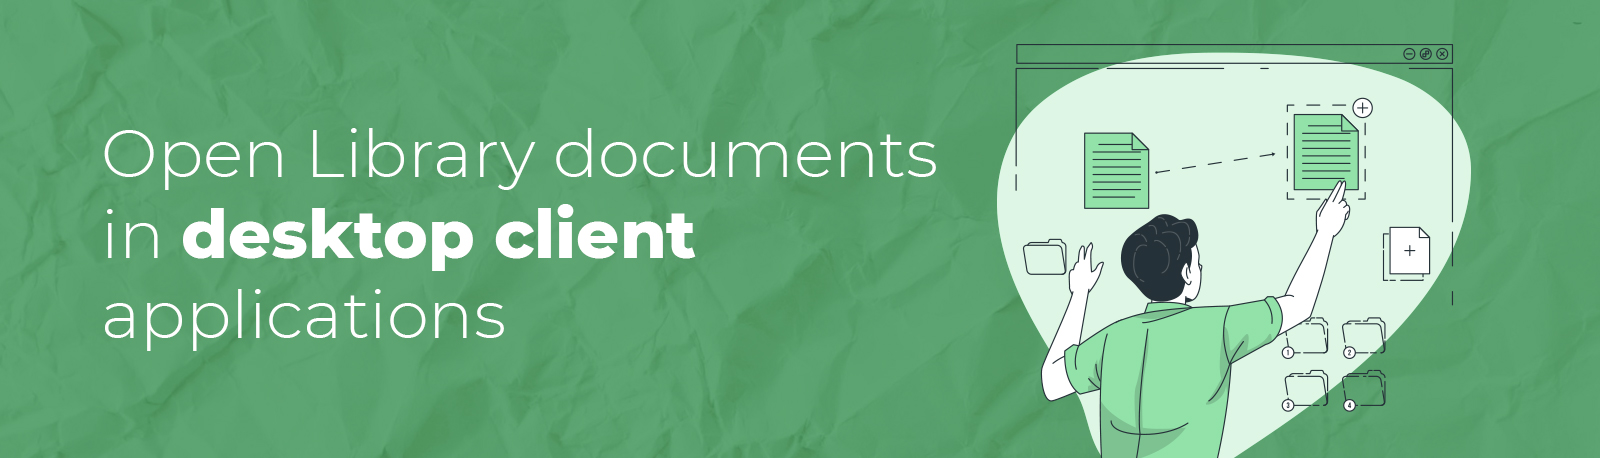 Open Library documents in desktop client applications